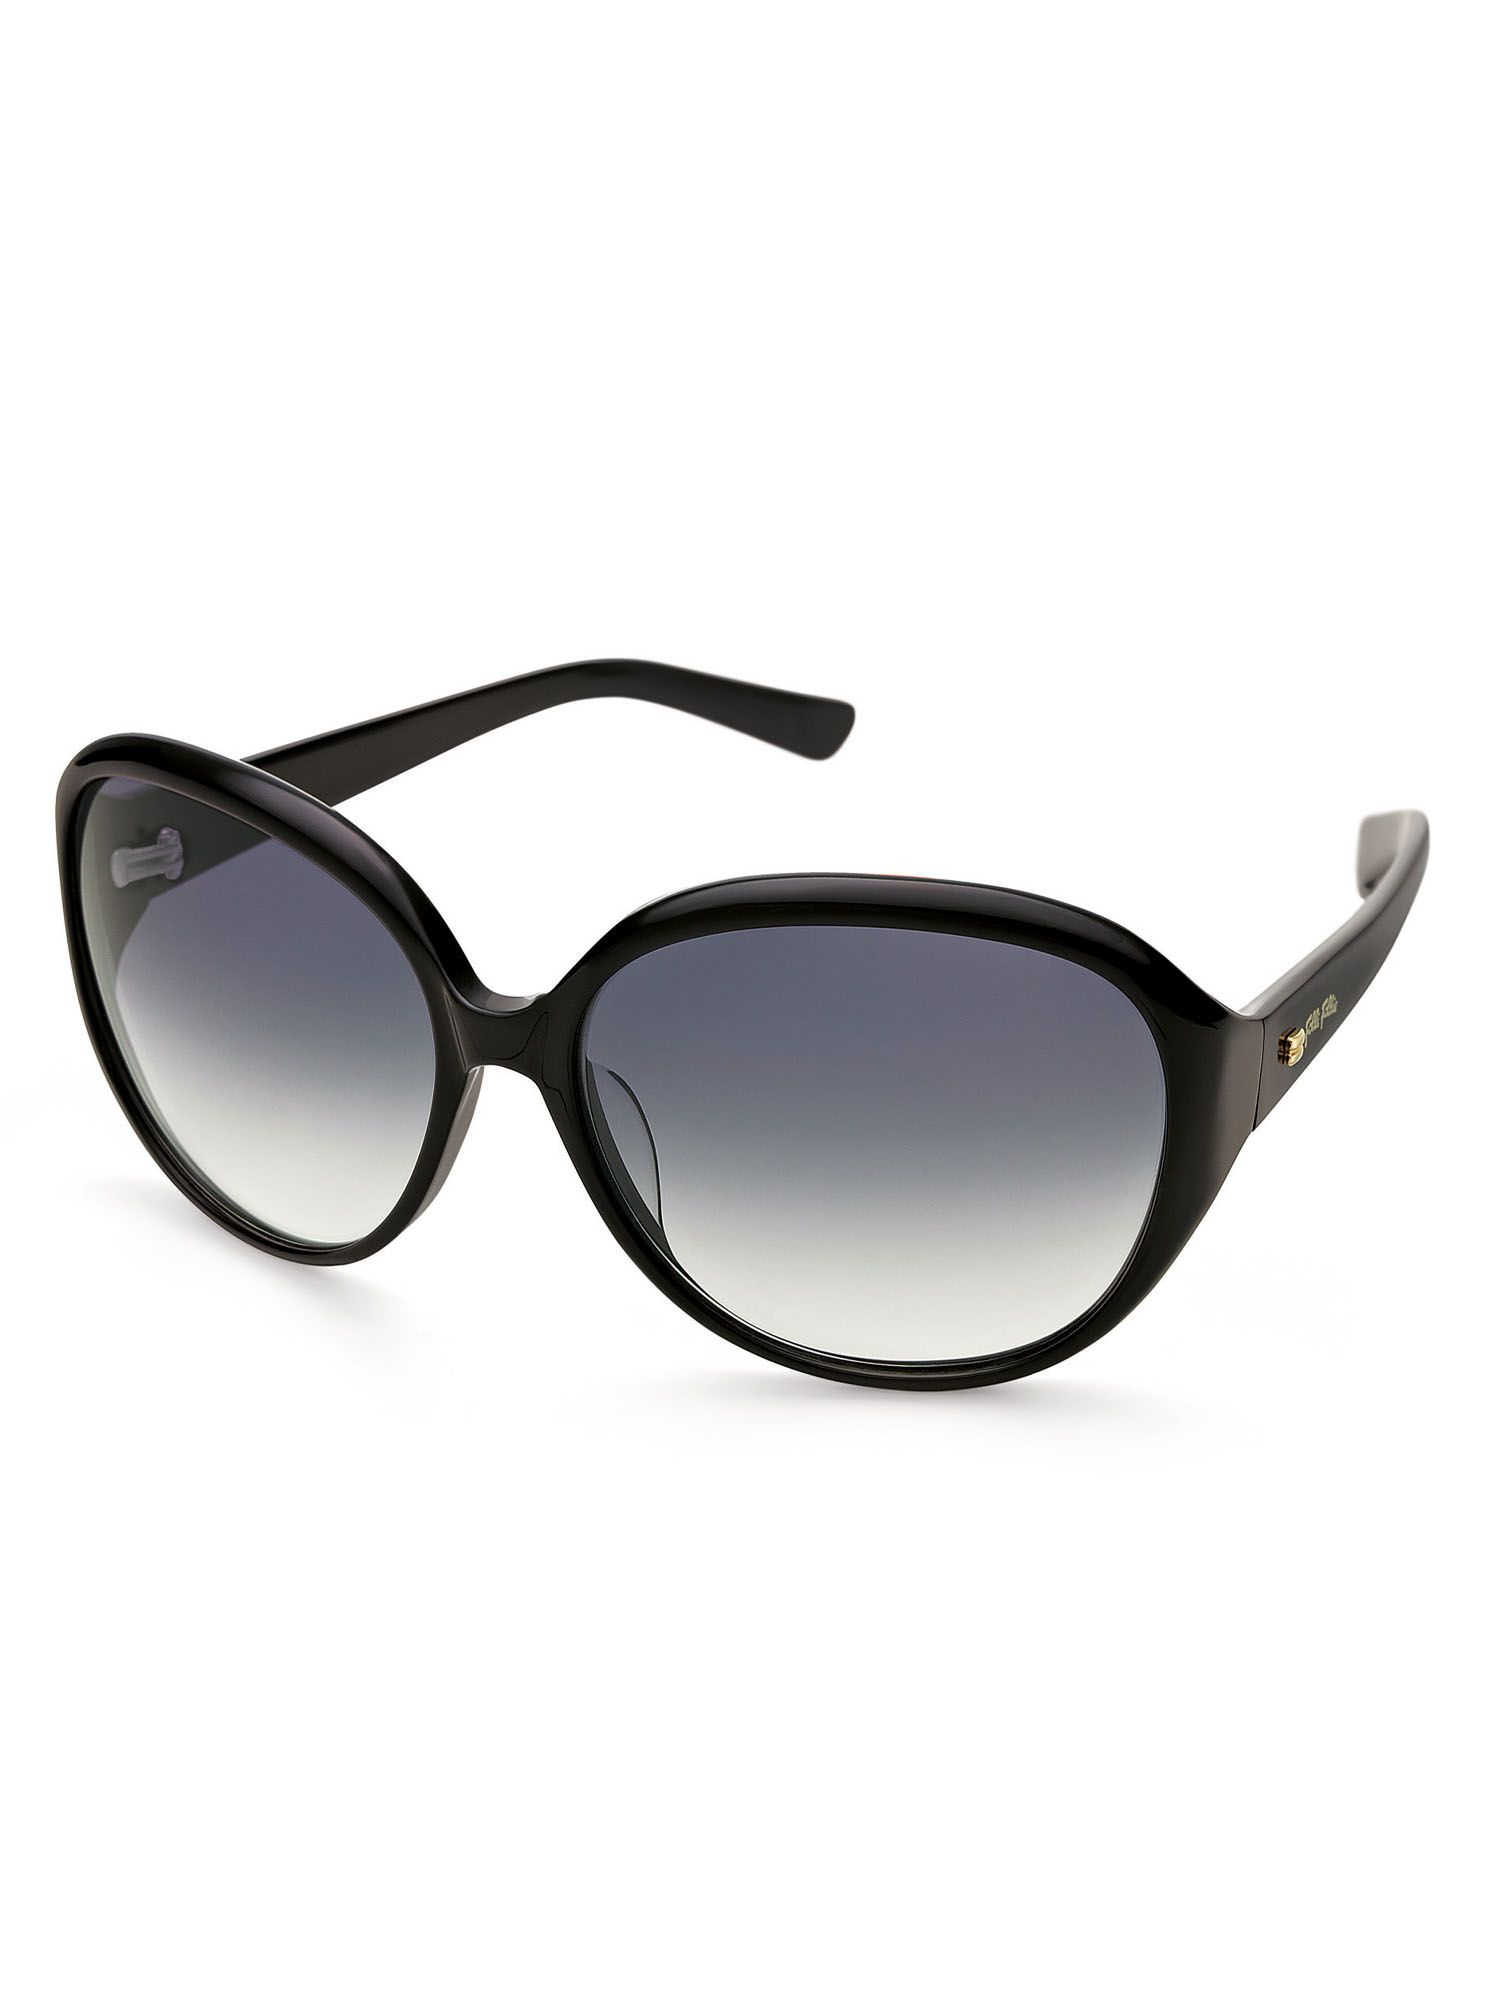 Ladies Black Round Sunglasses